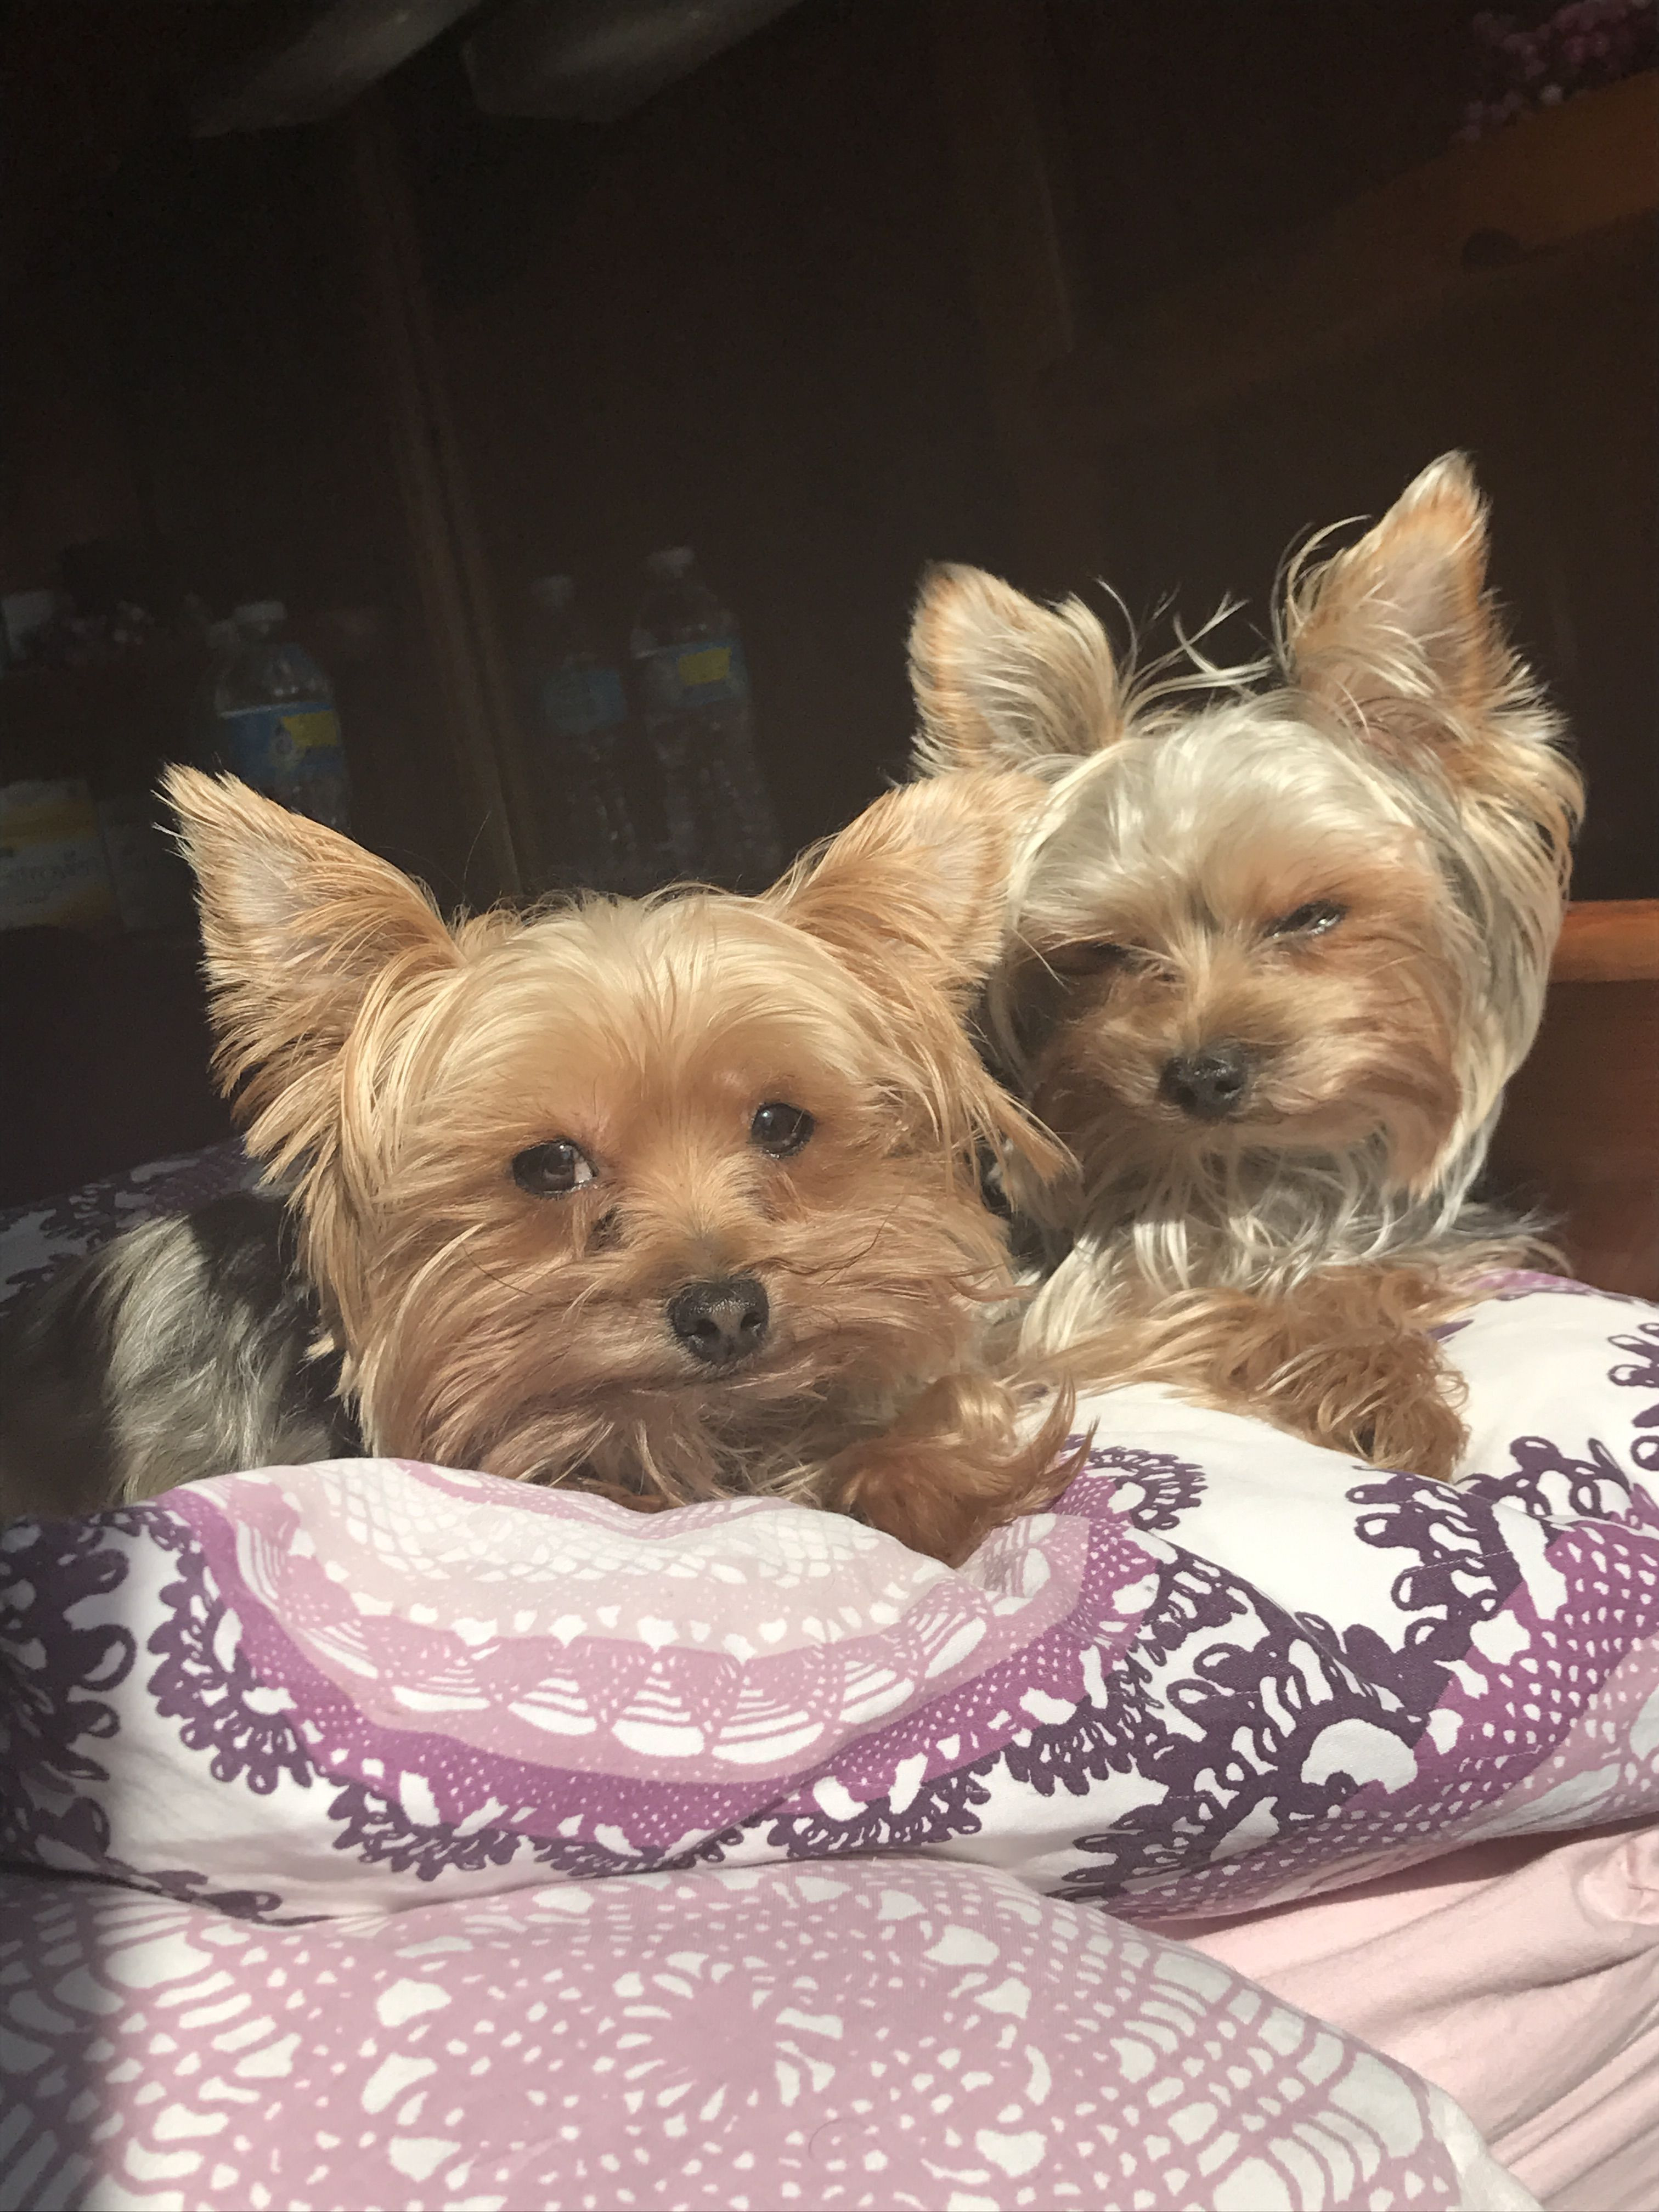 Boo And Gizmo Yorkshire Puppies Yorkshire Terrier Yorkshire Terrier Puppies